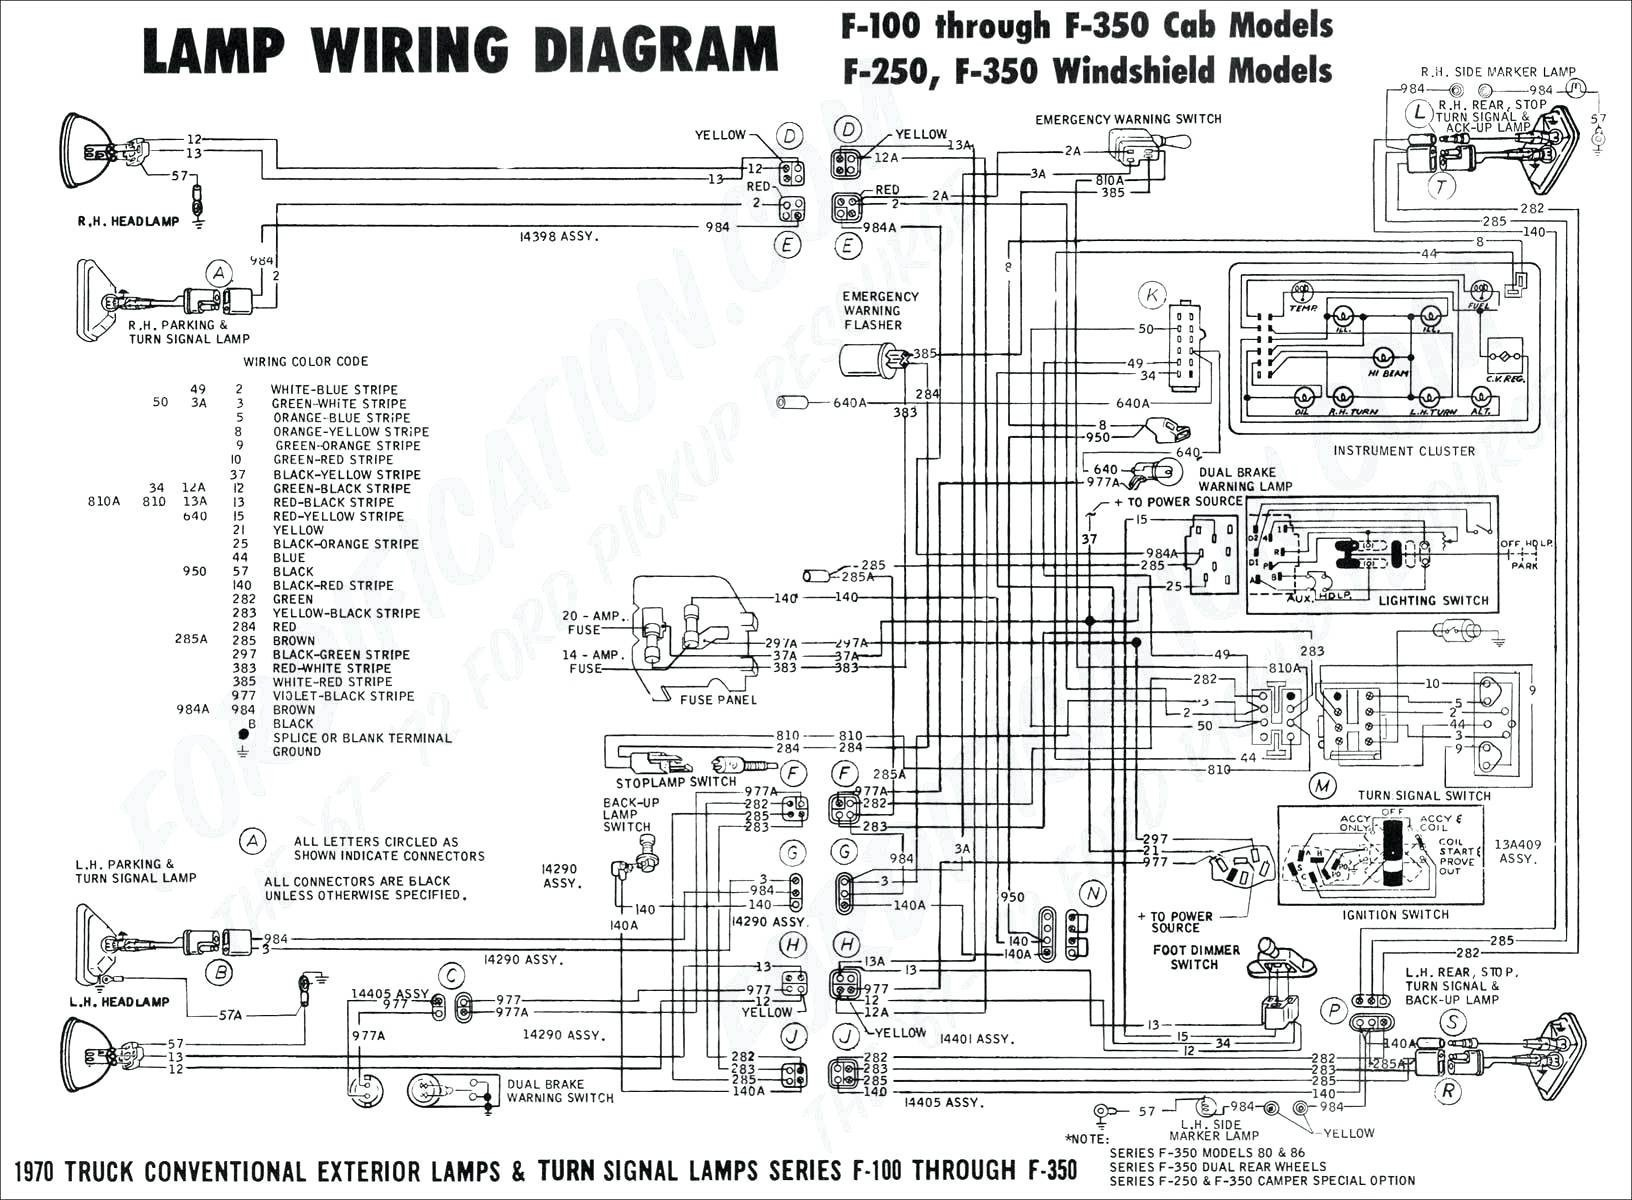 Wiring Photocell to Lighting Contactor Eaton atc 800 Wiring Diagram Contactor Wiring Diagram A1 A2 Of Wiring Photocell to Lighting Contactor